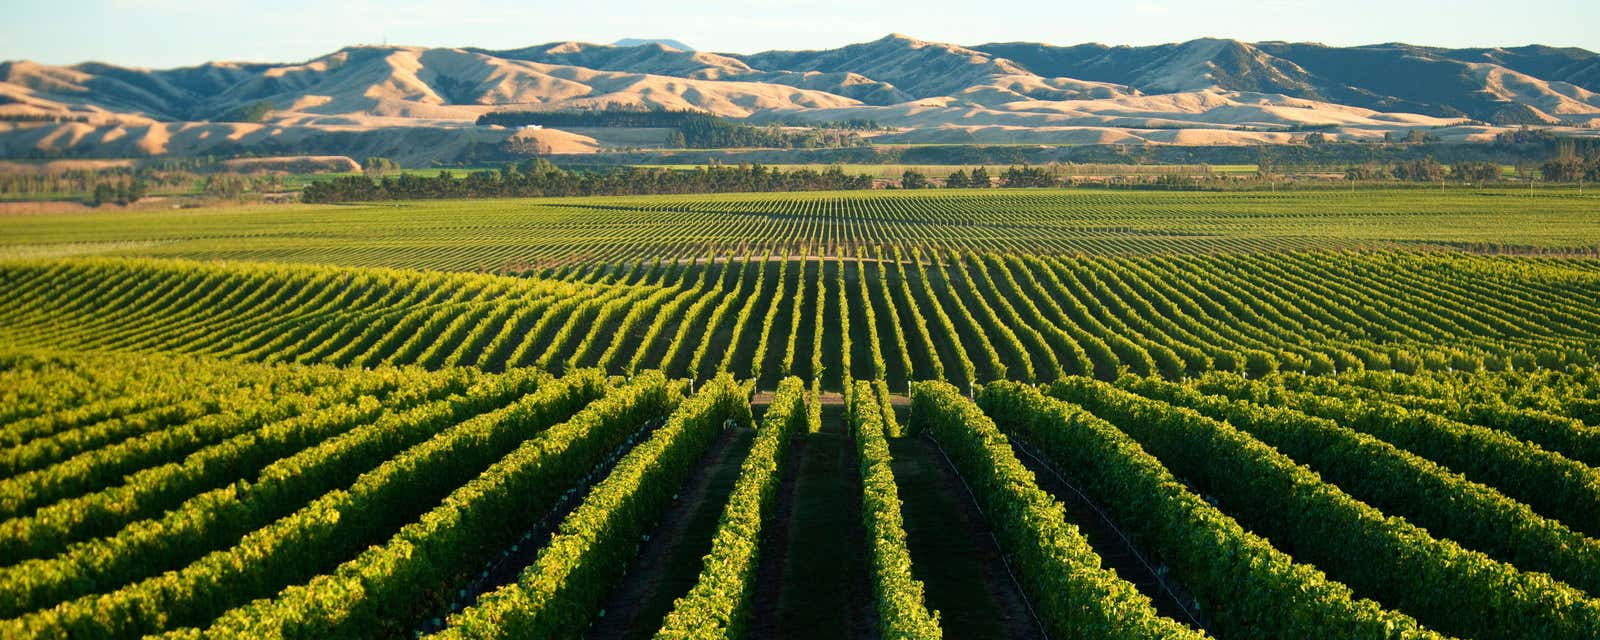 The vineyards of Wither Hills, Malborough, New Zealand.